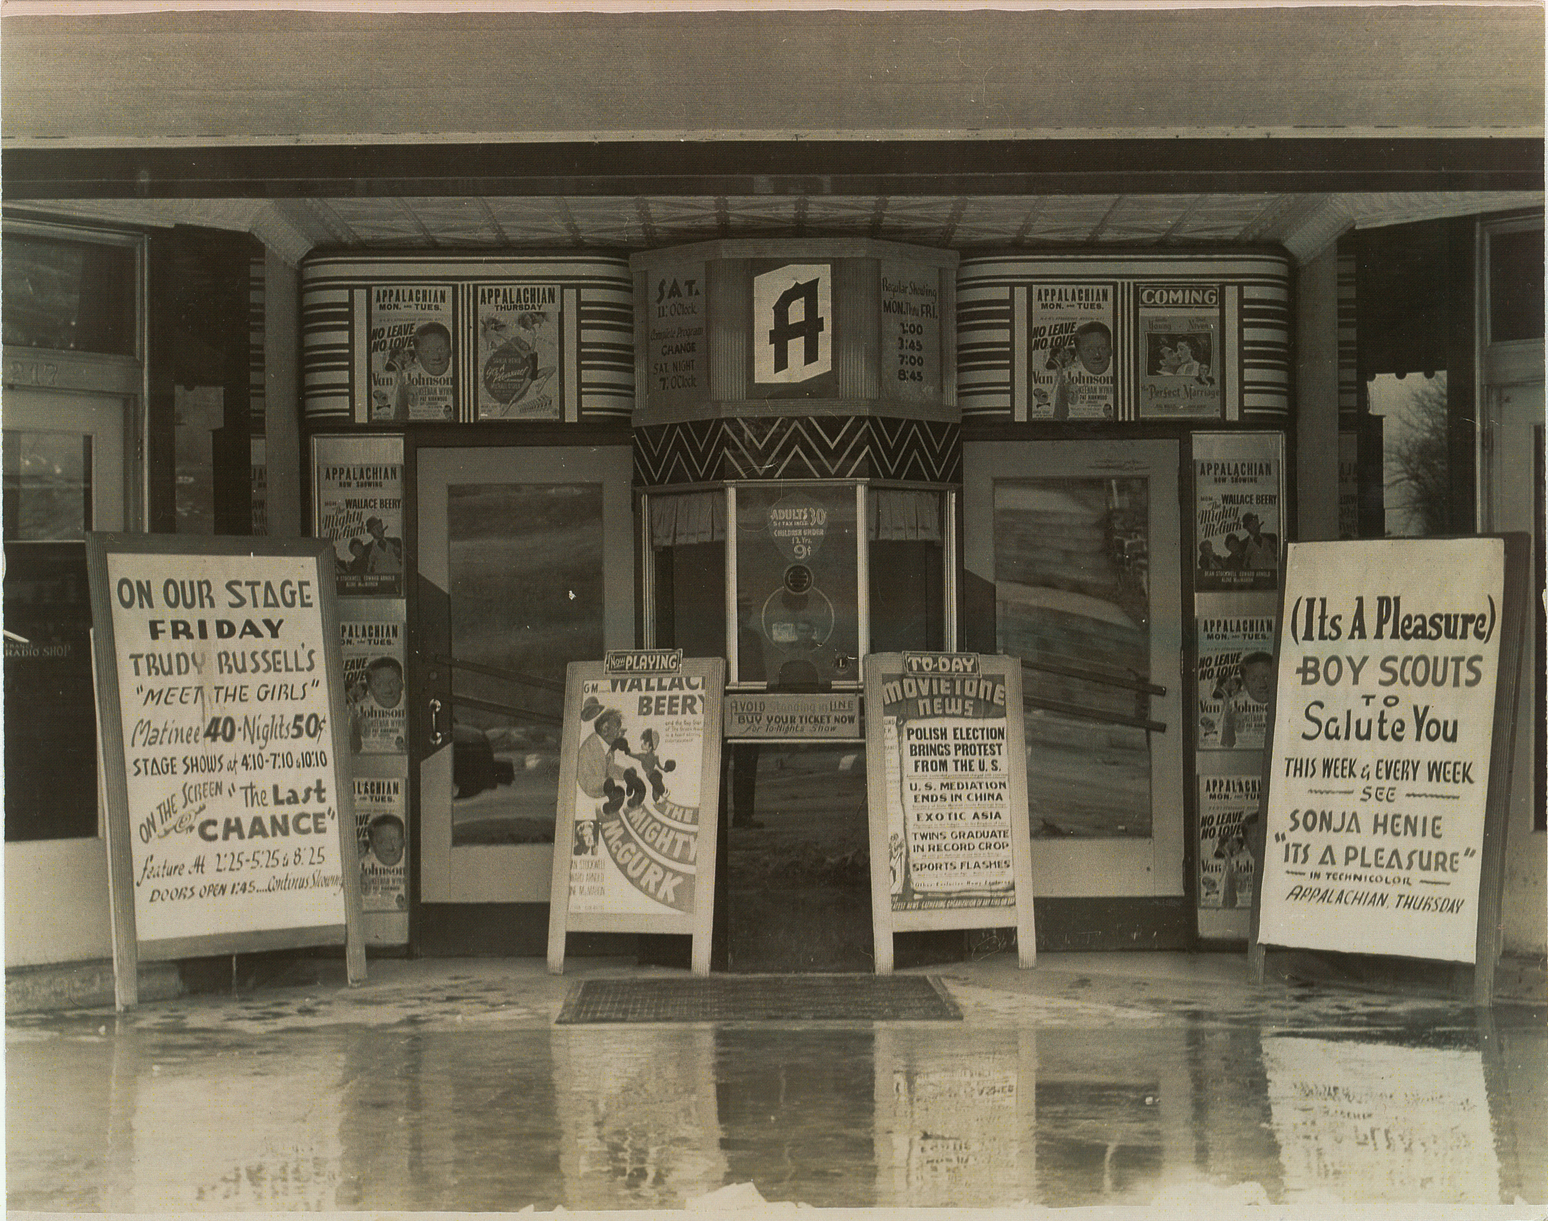 Appalachian Theatre entrance and ticket booth, ca. 1948